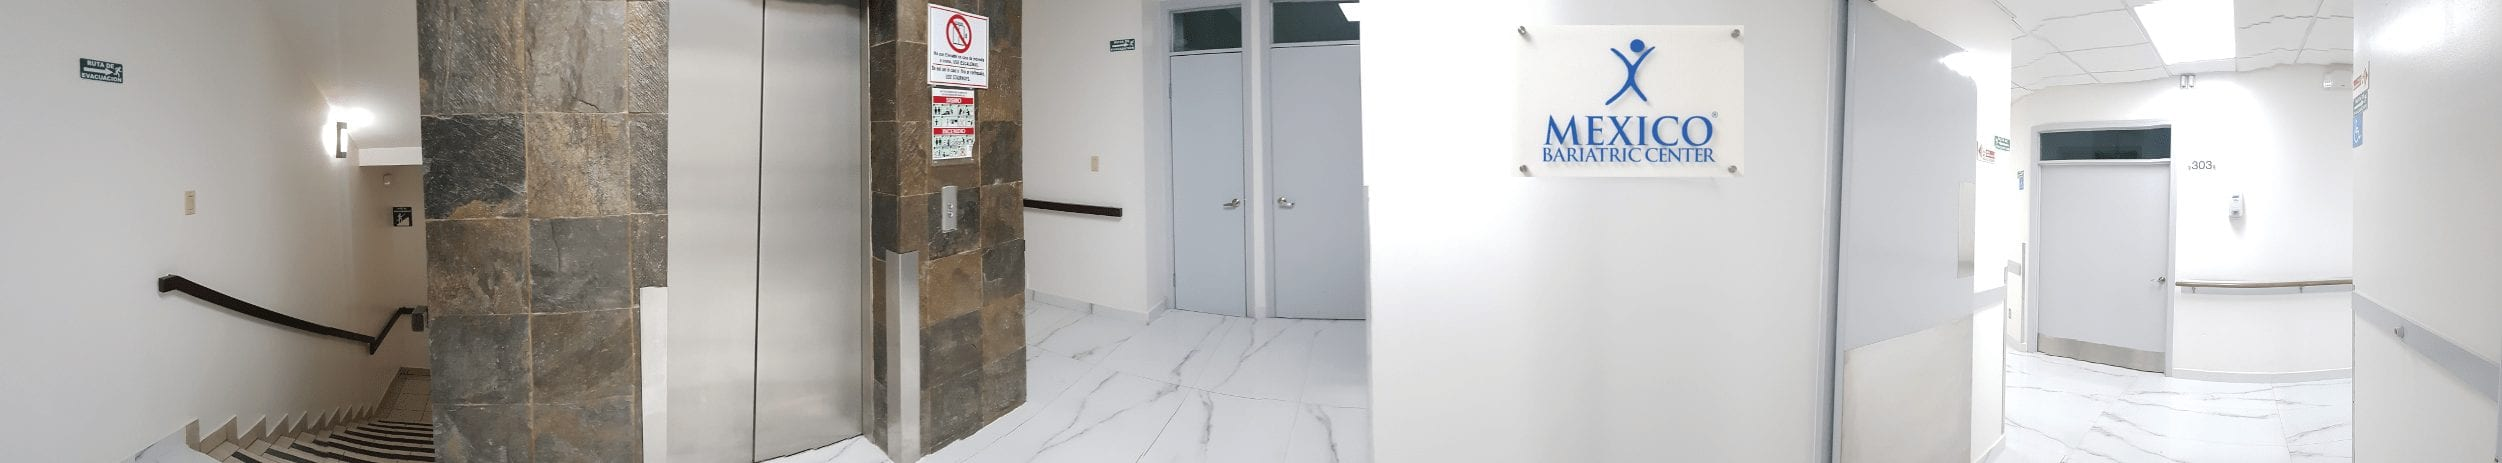 Mexico Bariatric Surgery Center at Mi Doctor Hospital in Tijuana - Surgical Center-min